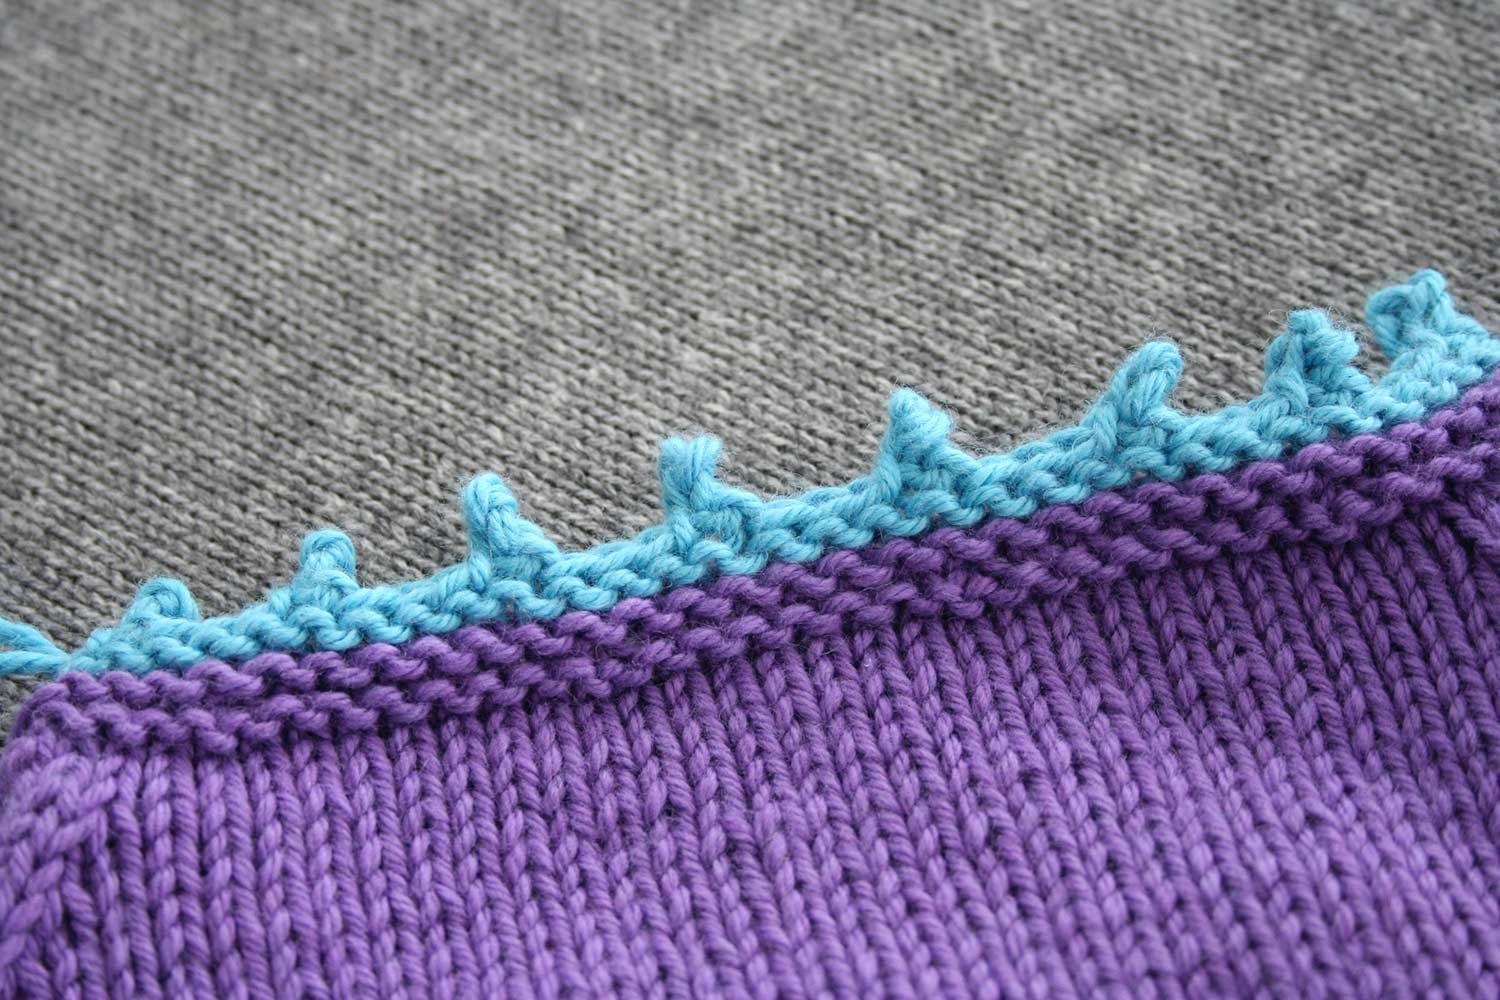 Back neck of purple sweater with contrasting blue completed picot bind off.